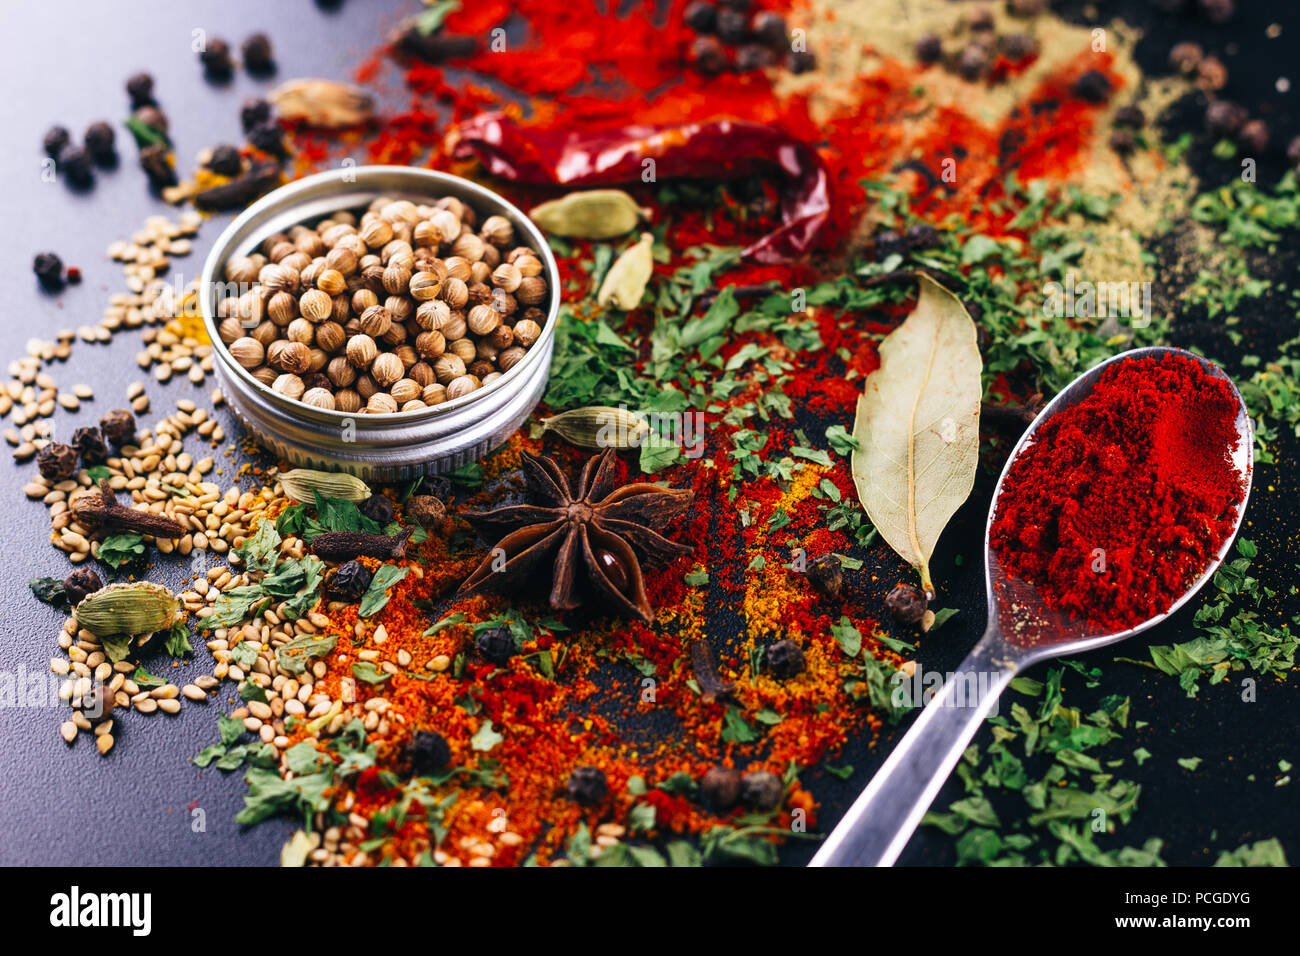 Disaster of spices and condiments for cooking, on a dark table, restaurant concept - Stock Image